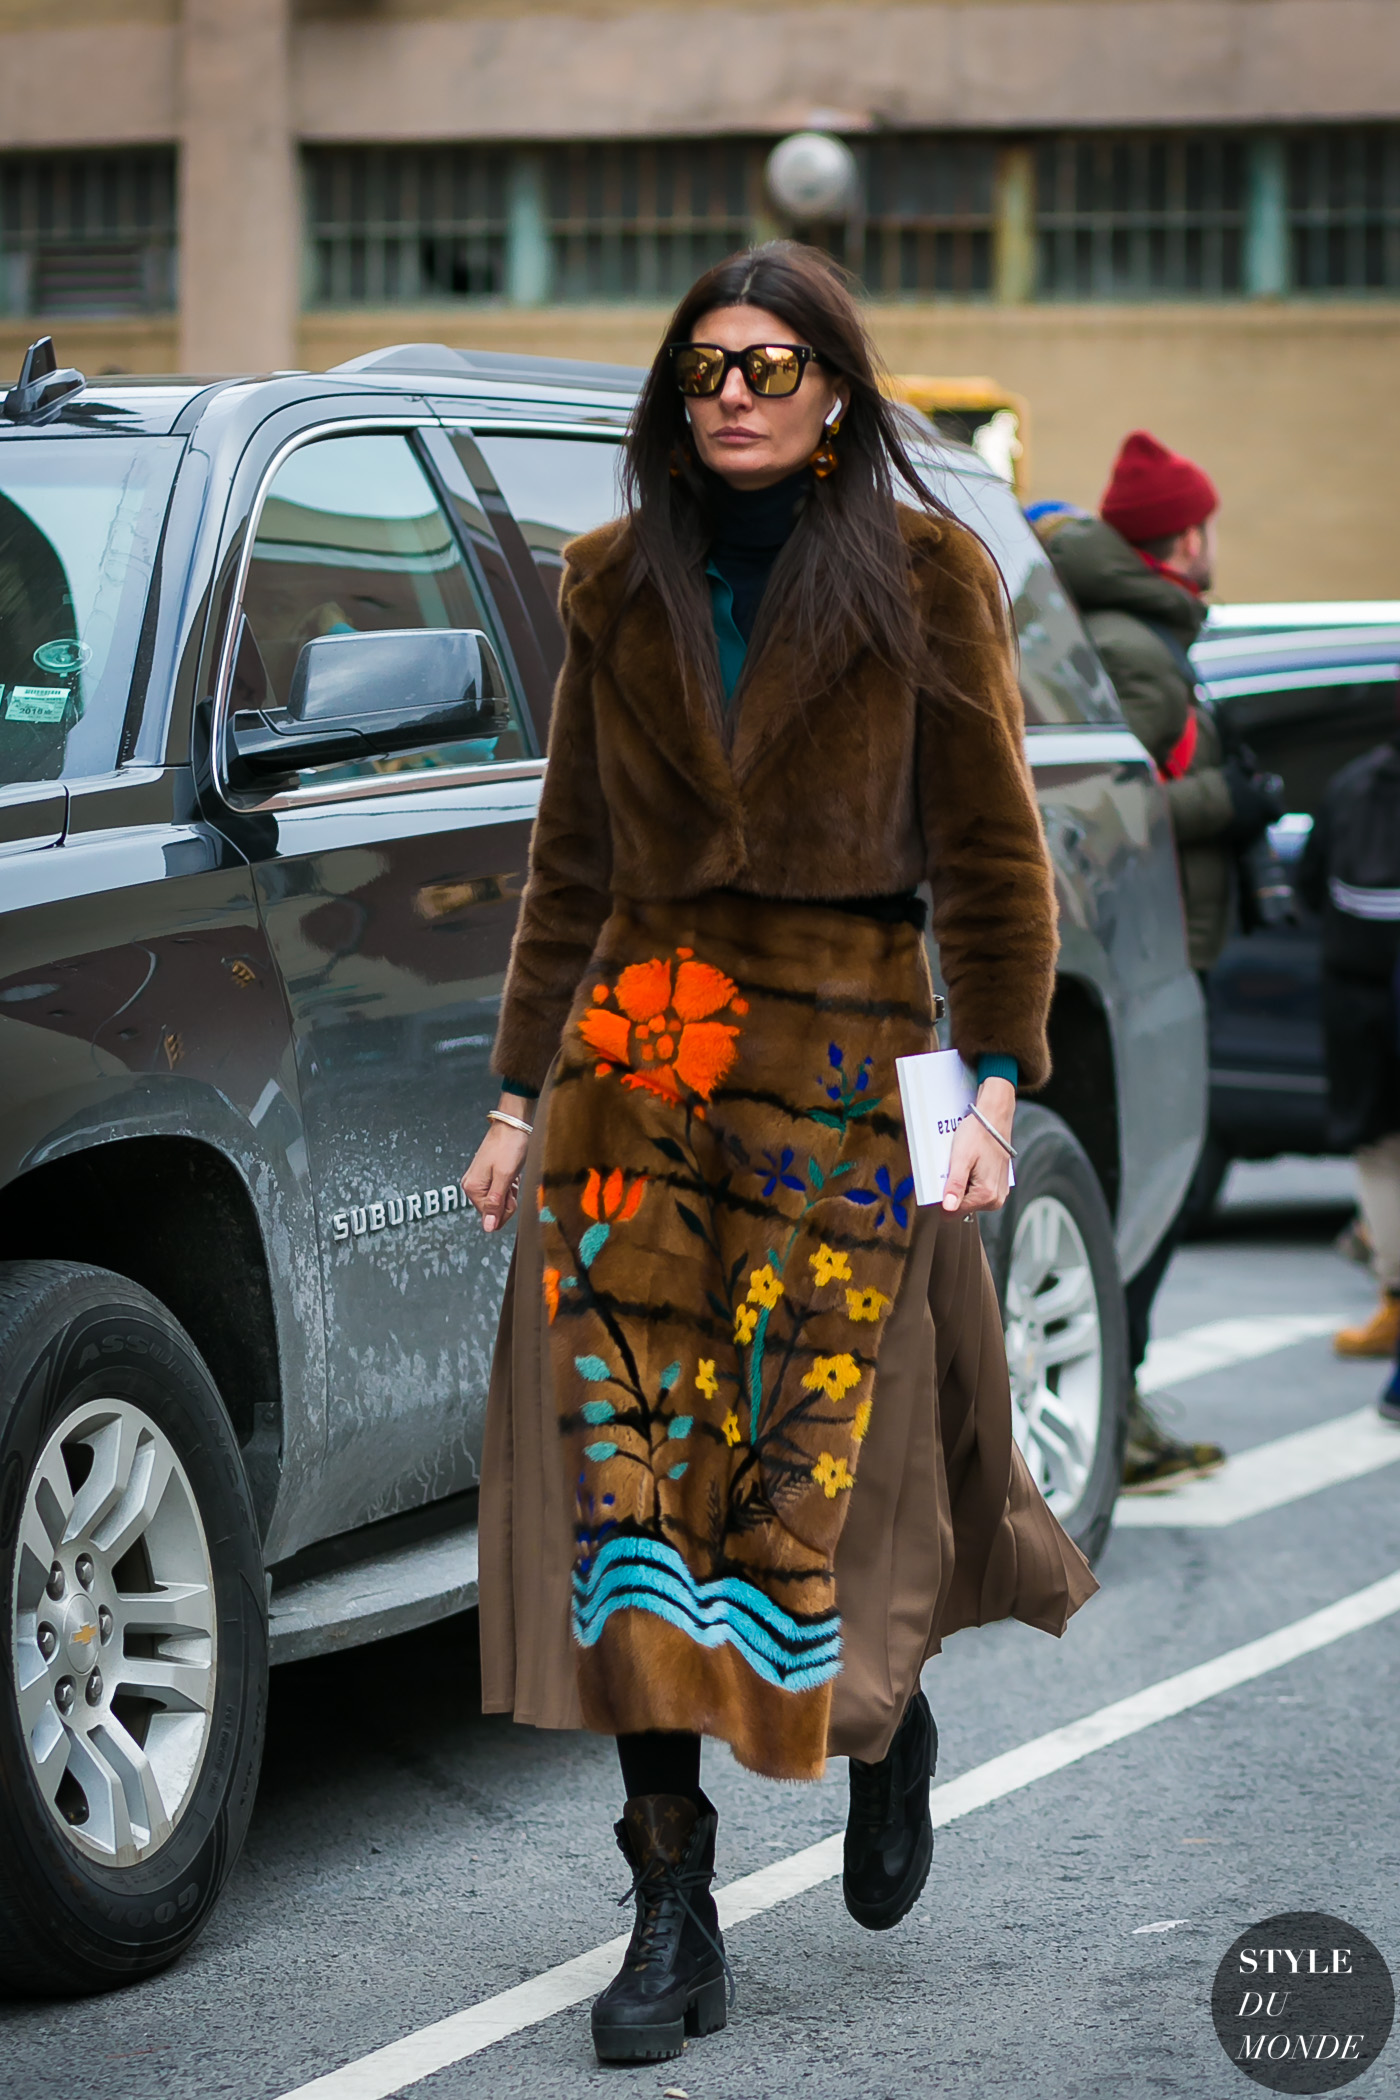 Giovanna Battaglia Engelbert by STYLEDUMONDE Street Style Fashion Photography0E2A5900